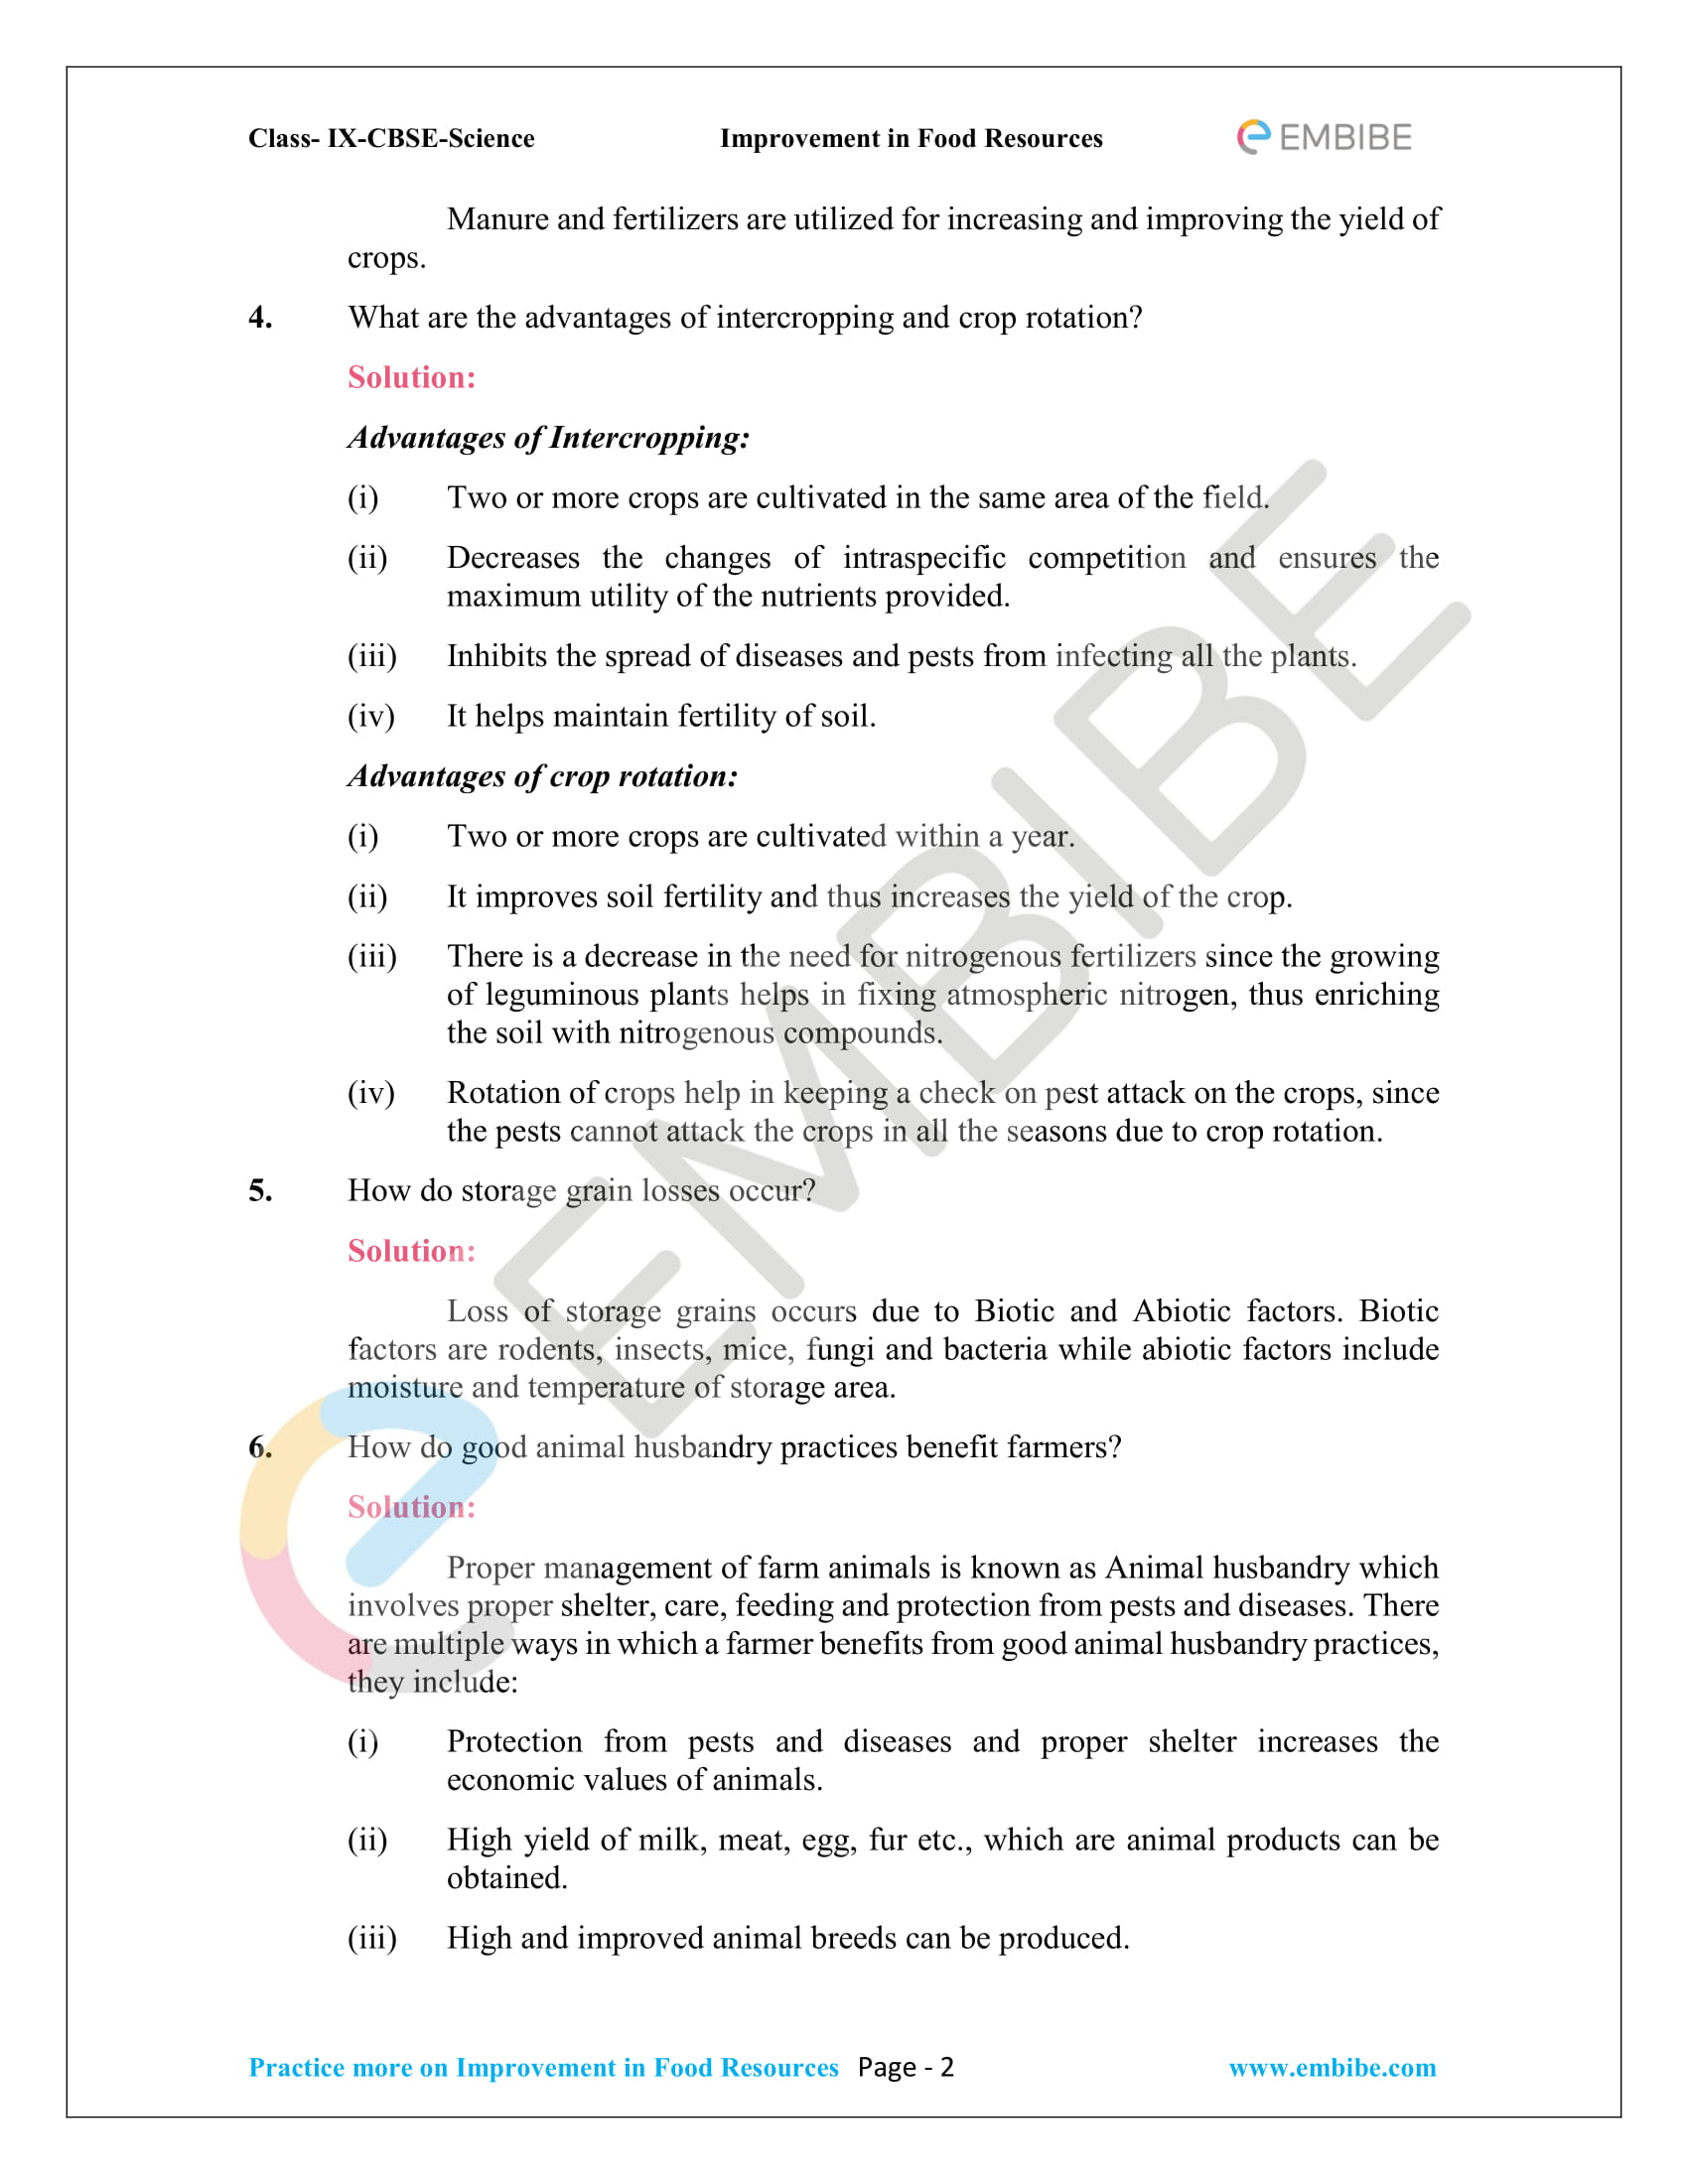 CBSE NCERT Solutions for Class 9 Science Chapter 15-2